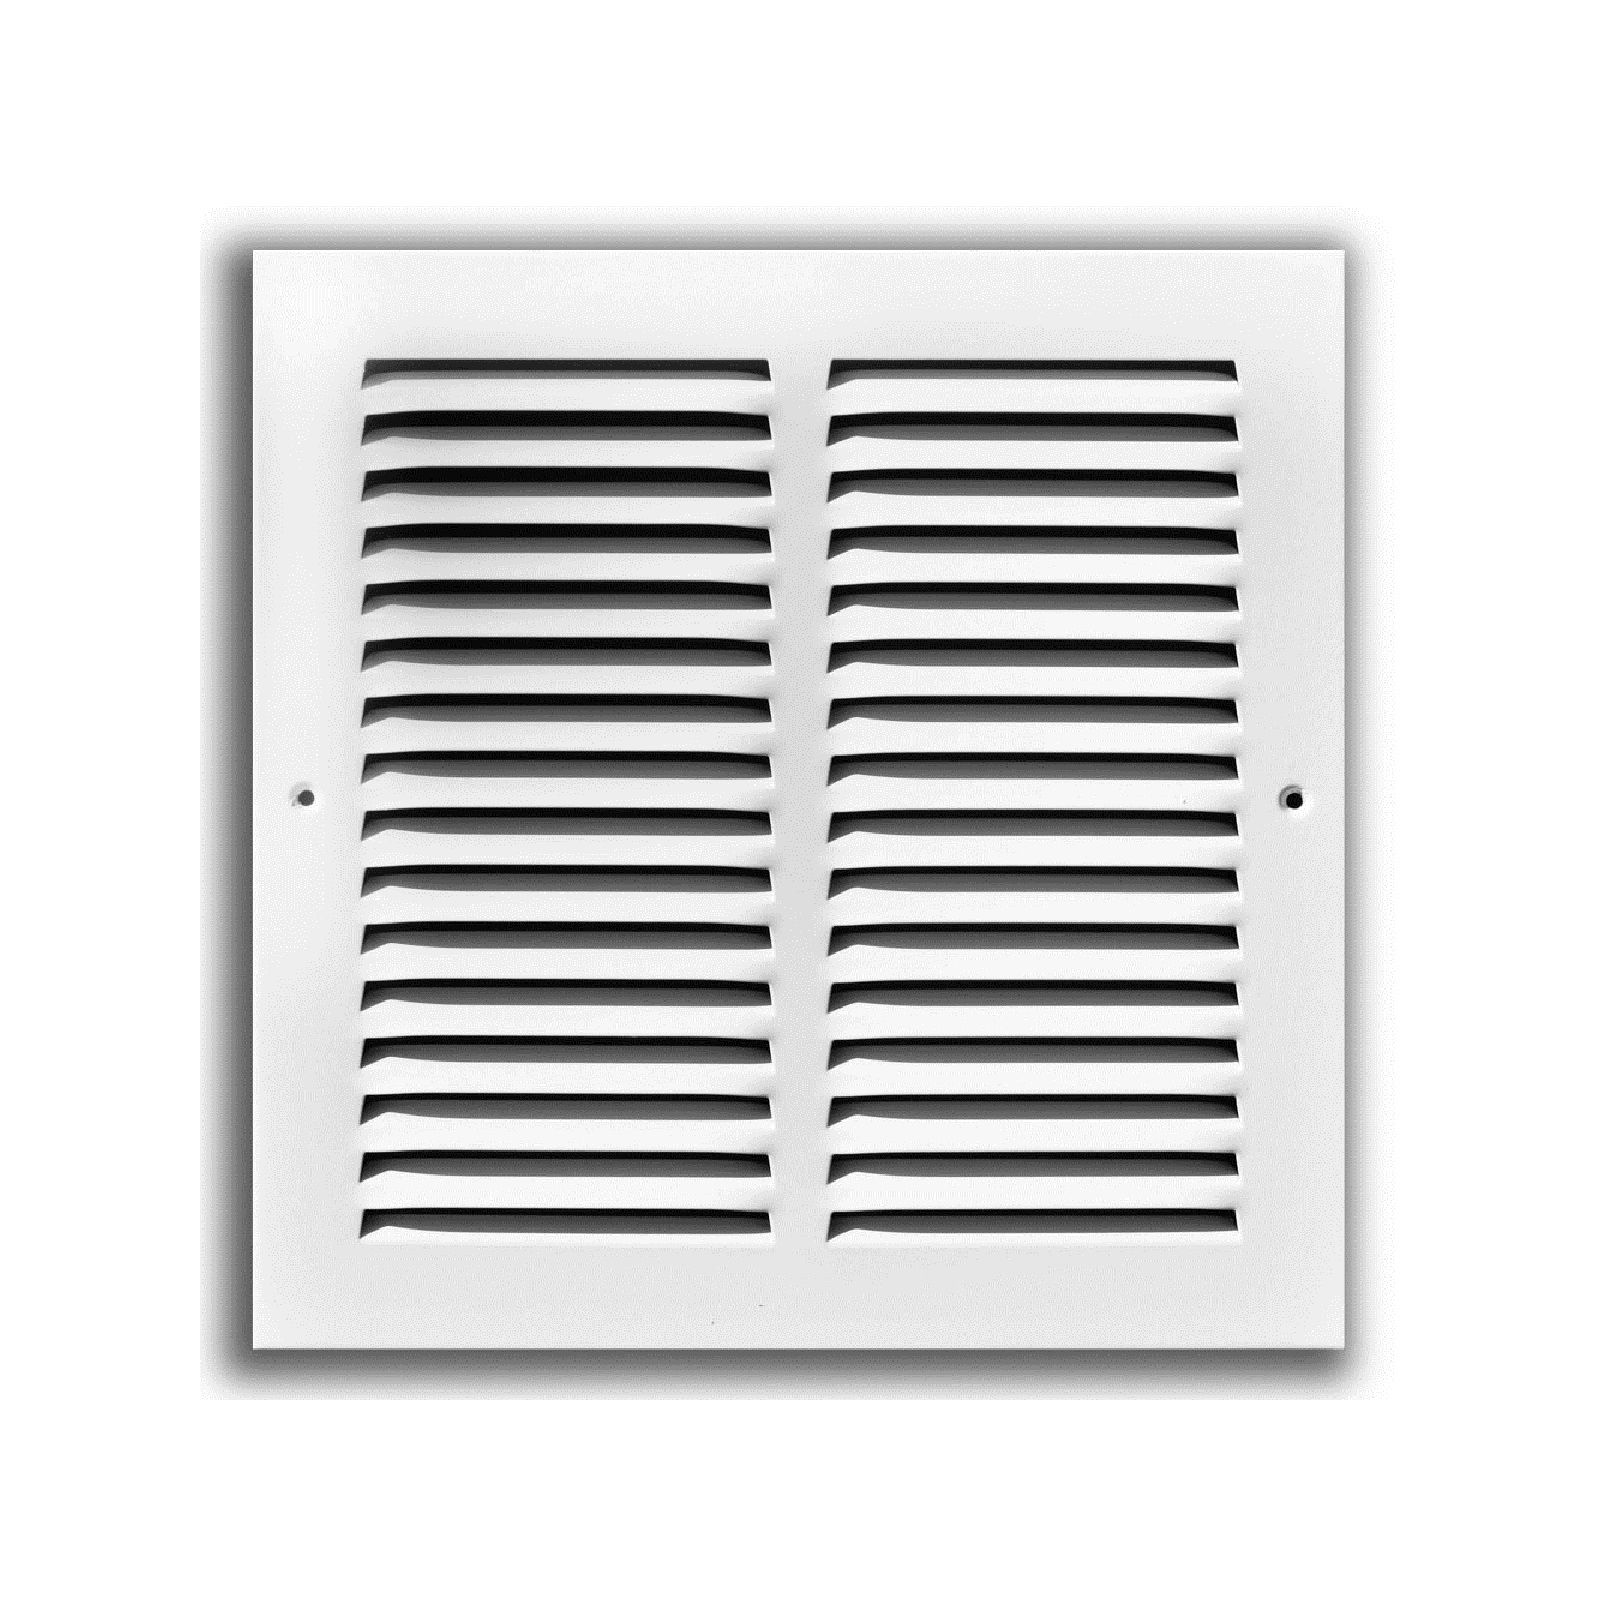 "TRUaire 170 14X30 - Steel Return Air Grille - 1/2"" Spaced Fin, White, 14"" X 30"""